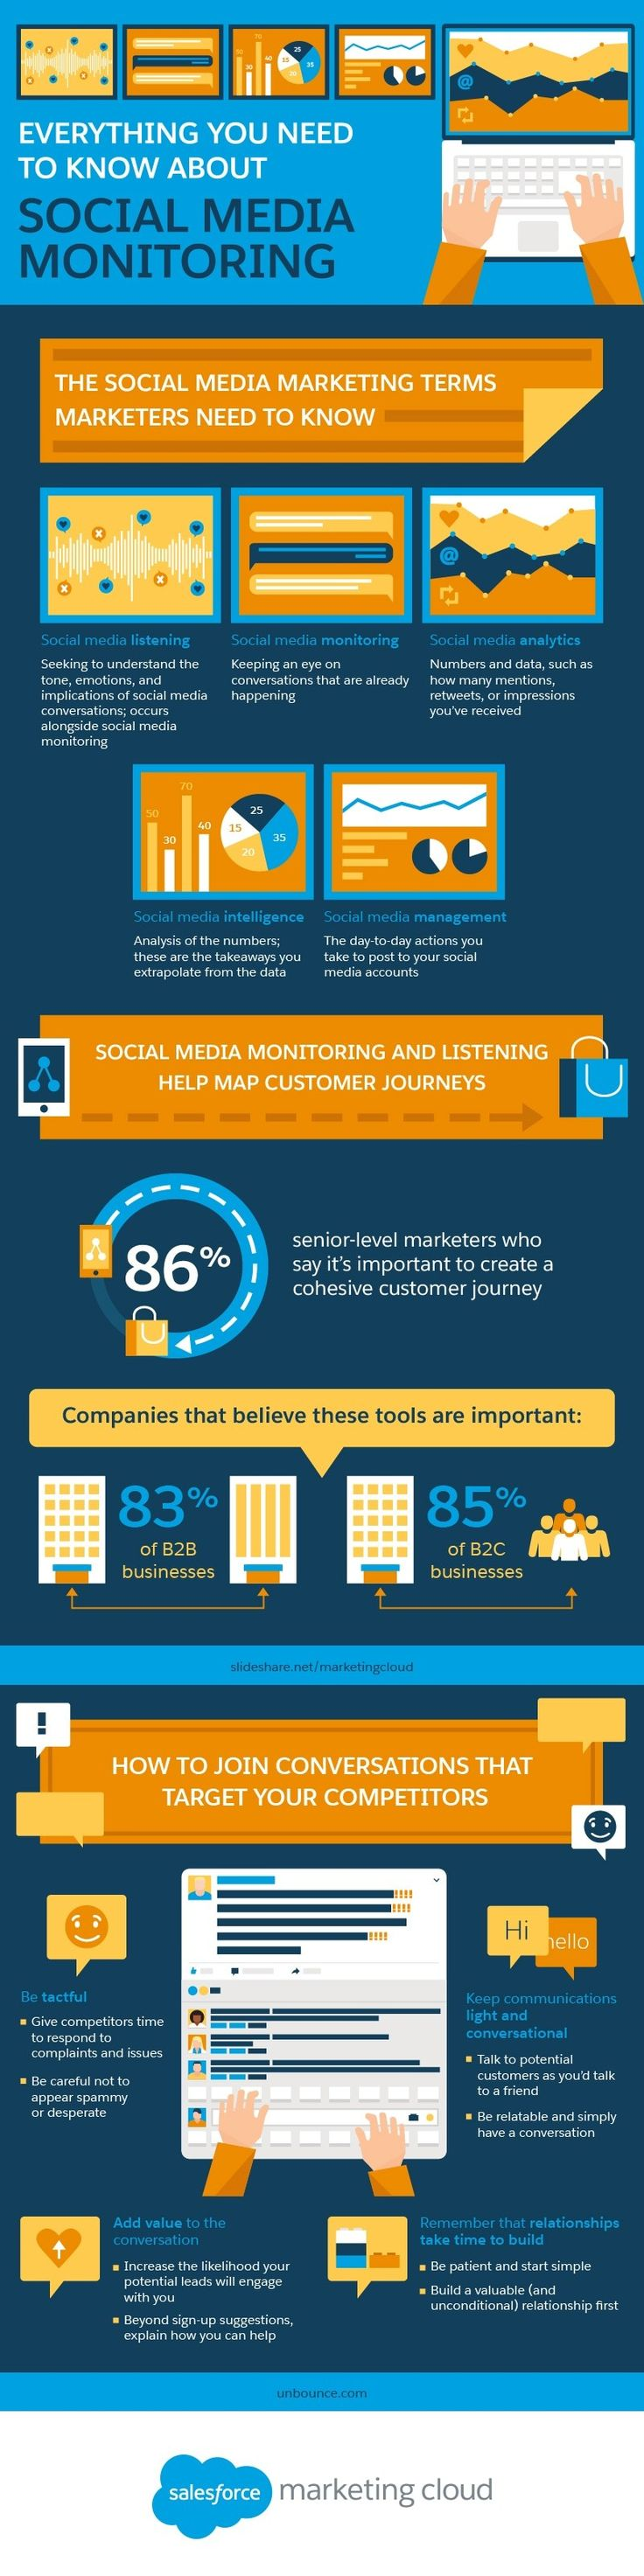 Everything You Need to Know about Social Media Monitoring [Infographic]